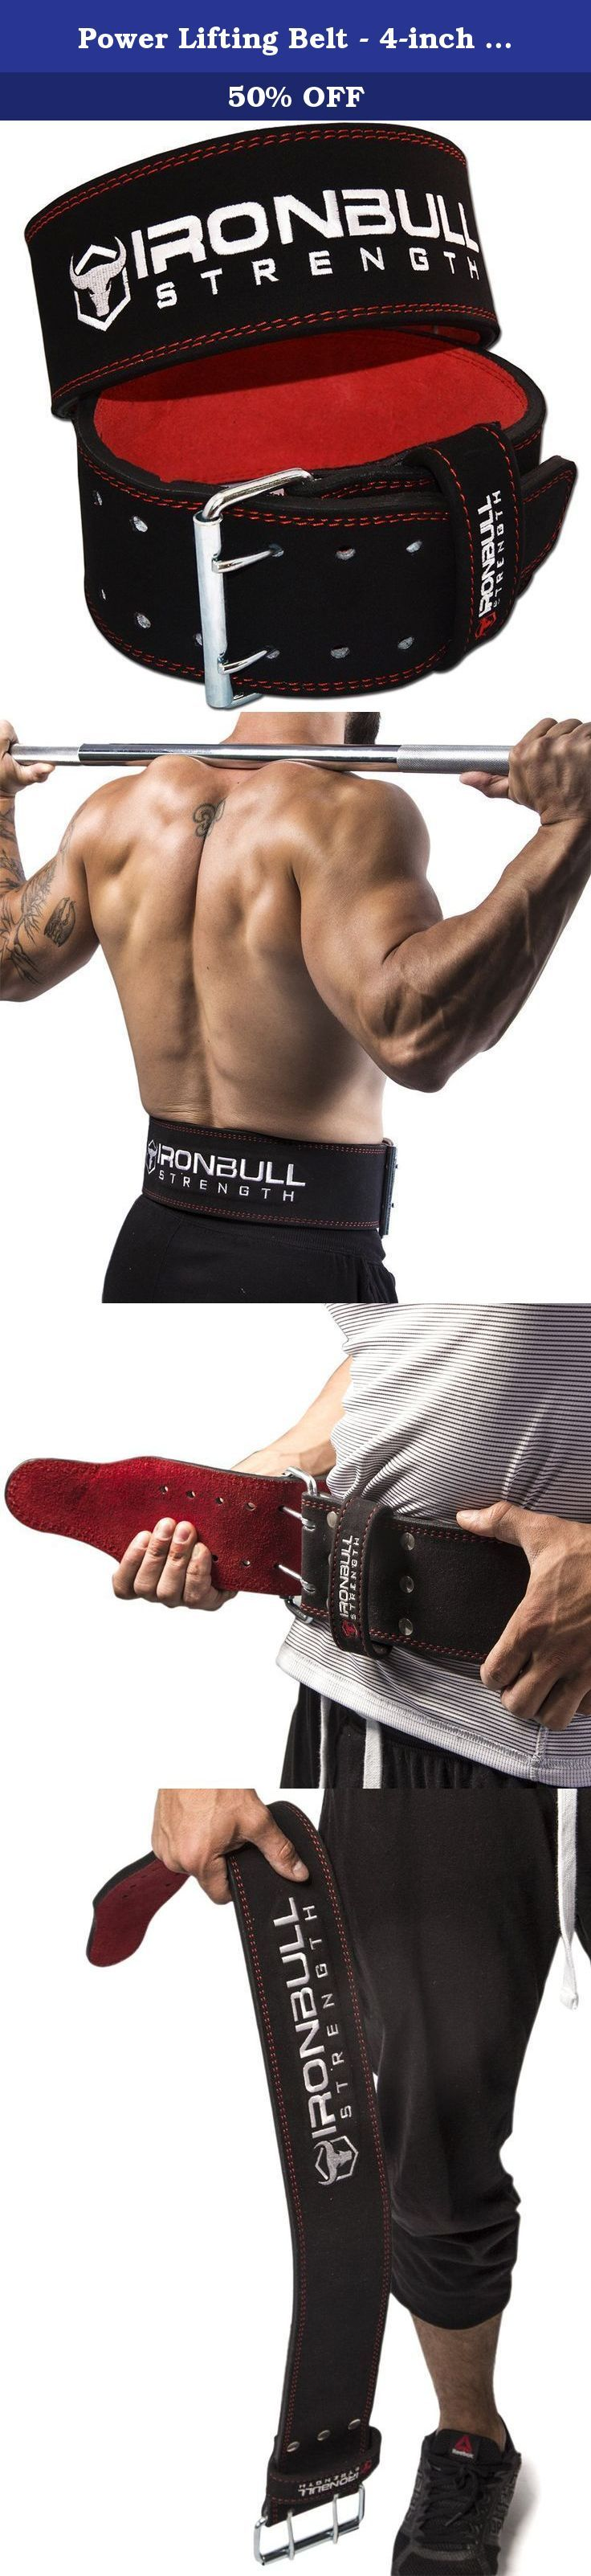 Power Lifting Belt - 4-inch Full Leather - Heavy Duty for Extreme Weight Lifting (Large). Protect Your Back And Lift More Weight! The new Iron Bull Strength's powerlifting belt has been carefully designed to maximize performance, durability, safety and comfort. The 10mm thickness provides the best support and comfort a power belt can offer. It conforms to your body stabilizing lumbar support that lets you take your power training to the next level. Add to this our double stitching...